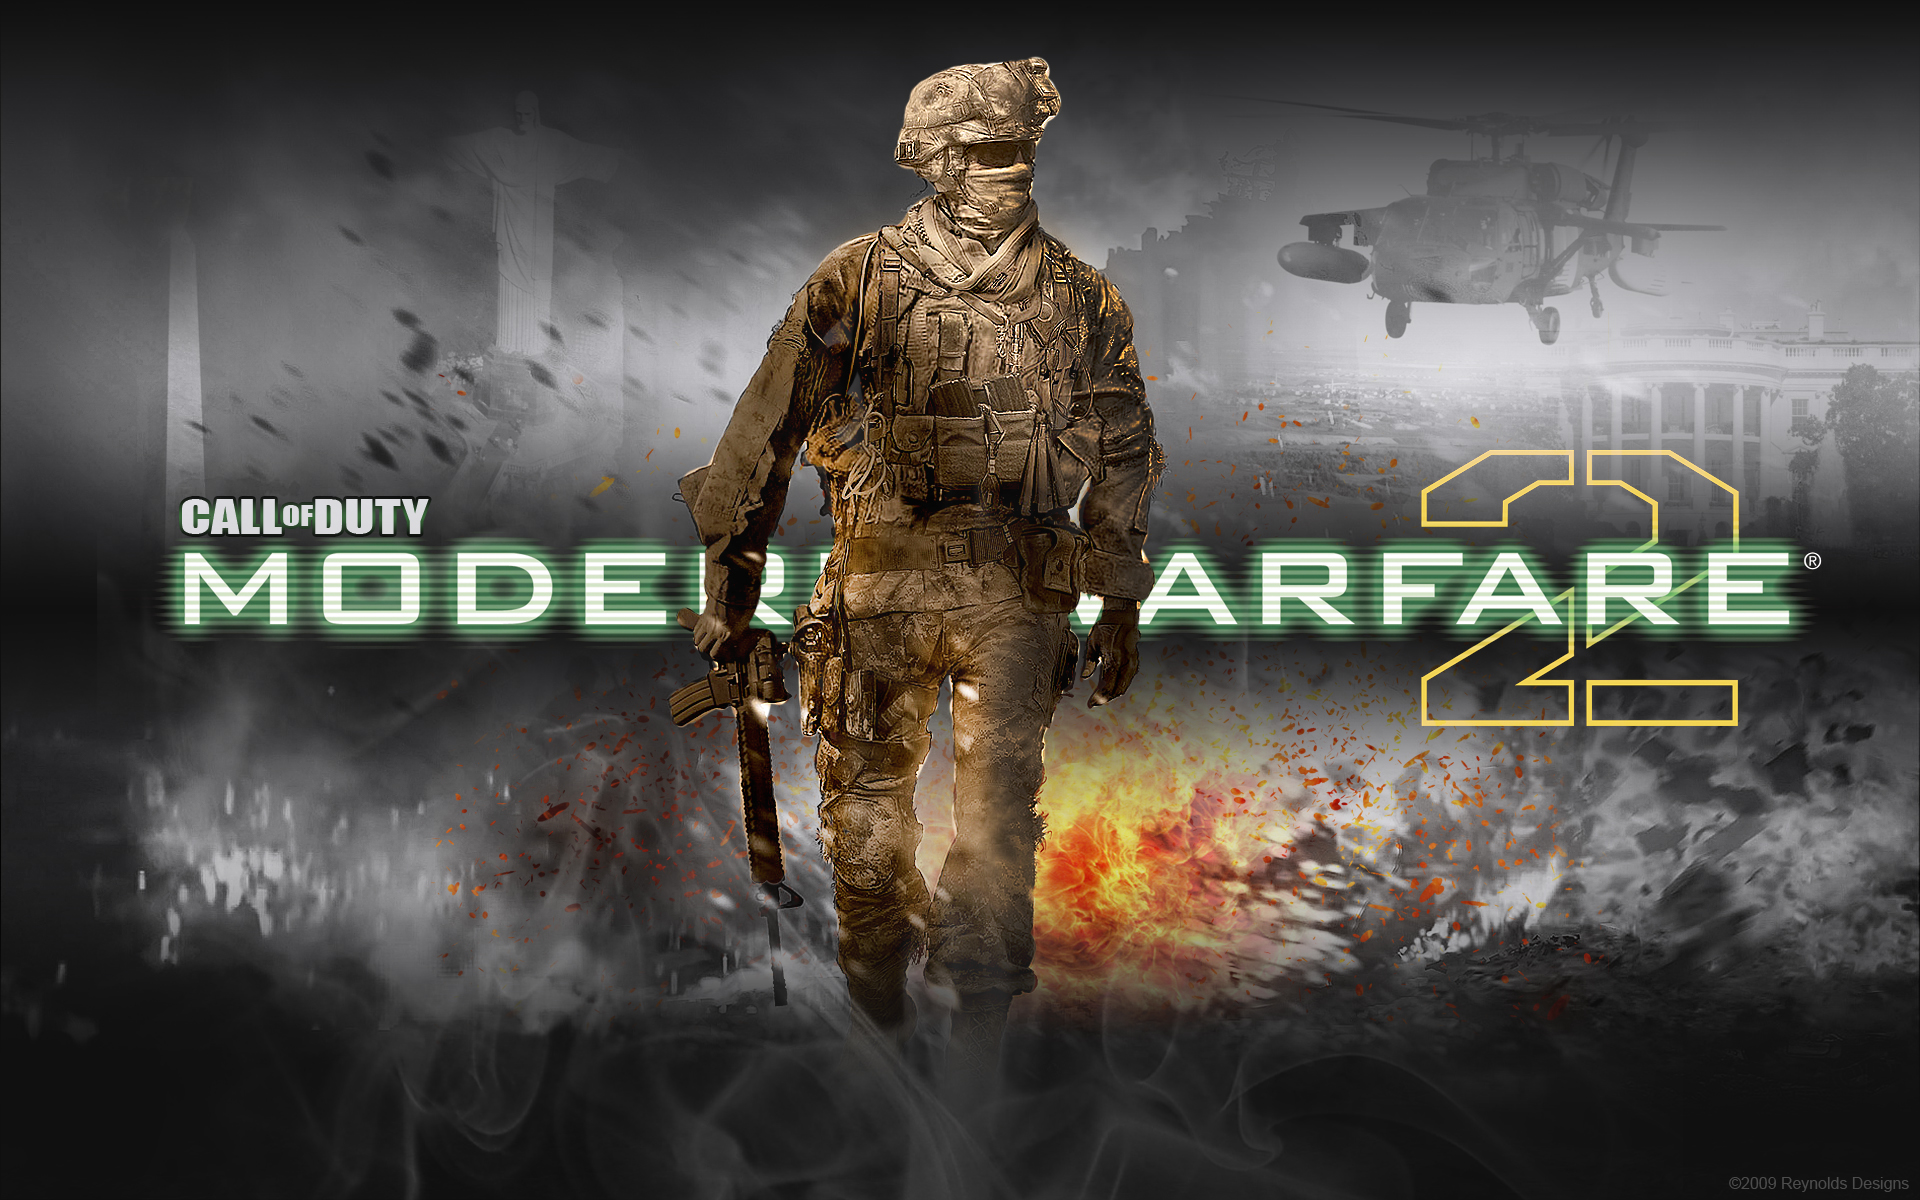 Call of duty mw2 hacks ps3 | Call of Duty: Modern Warfare 2